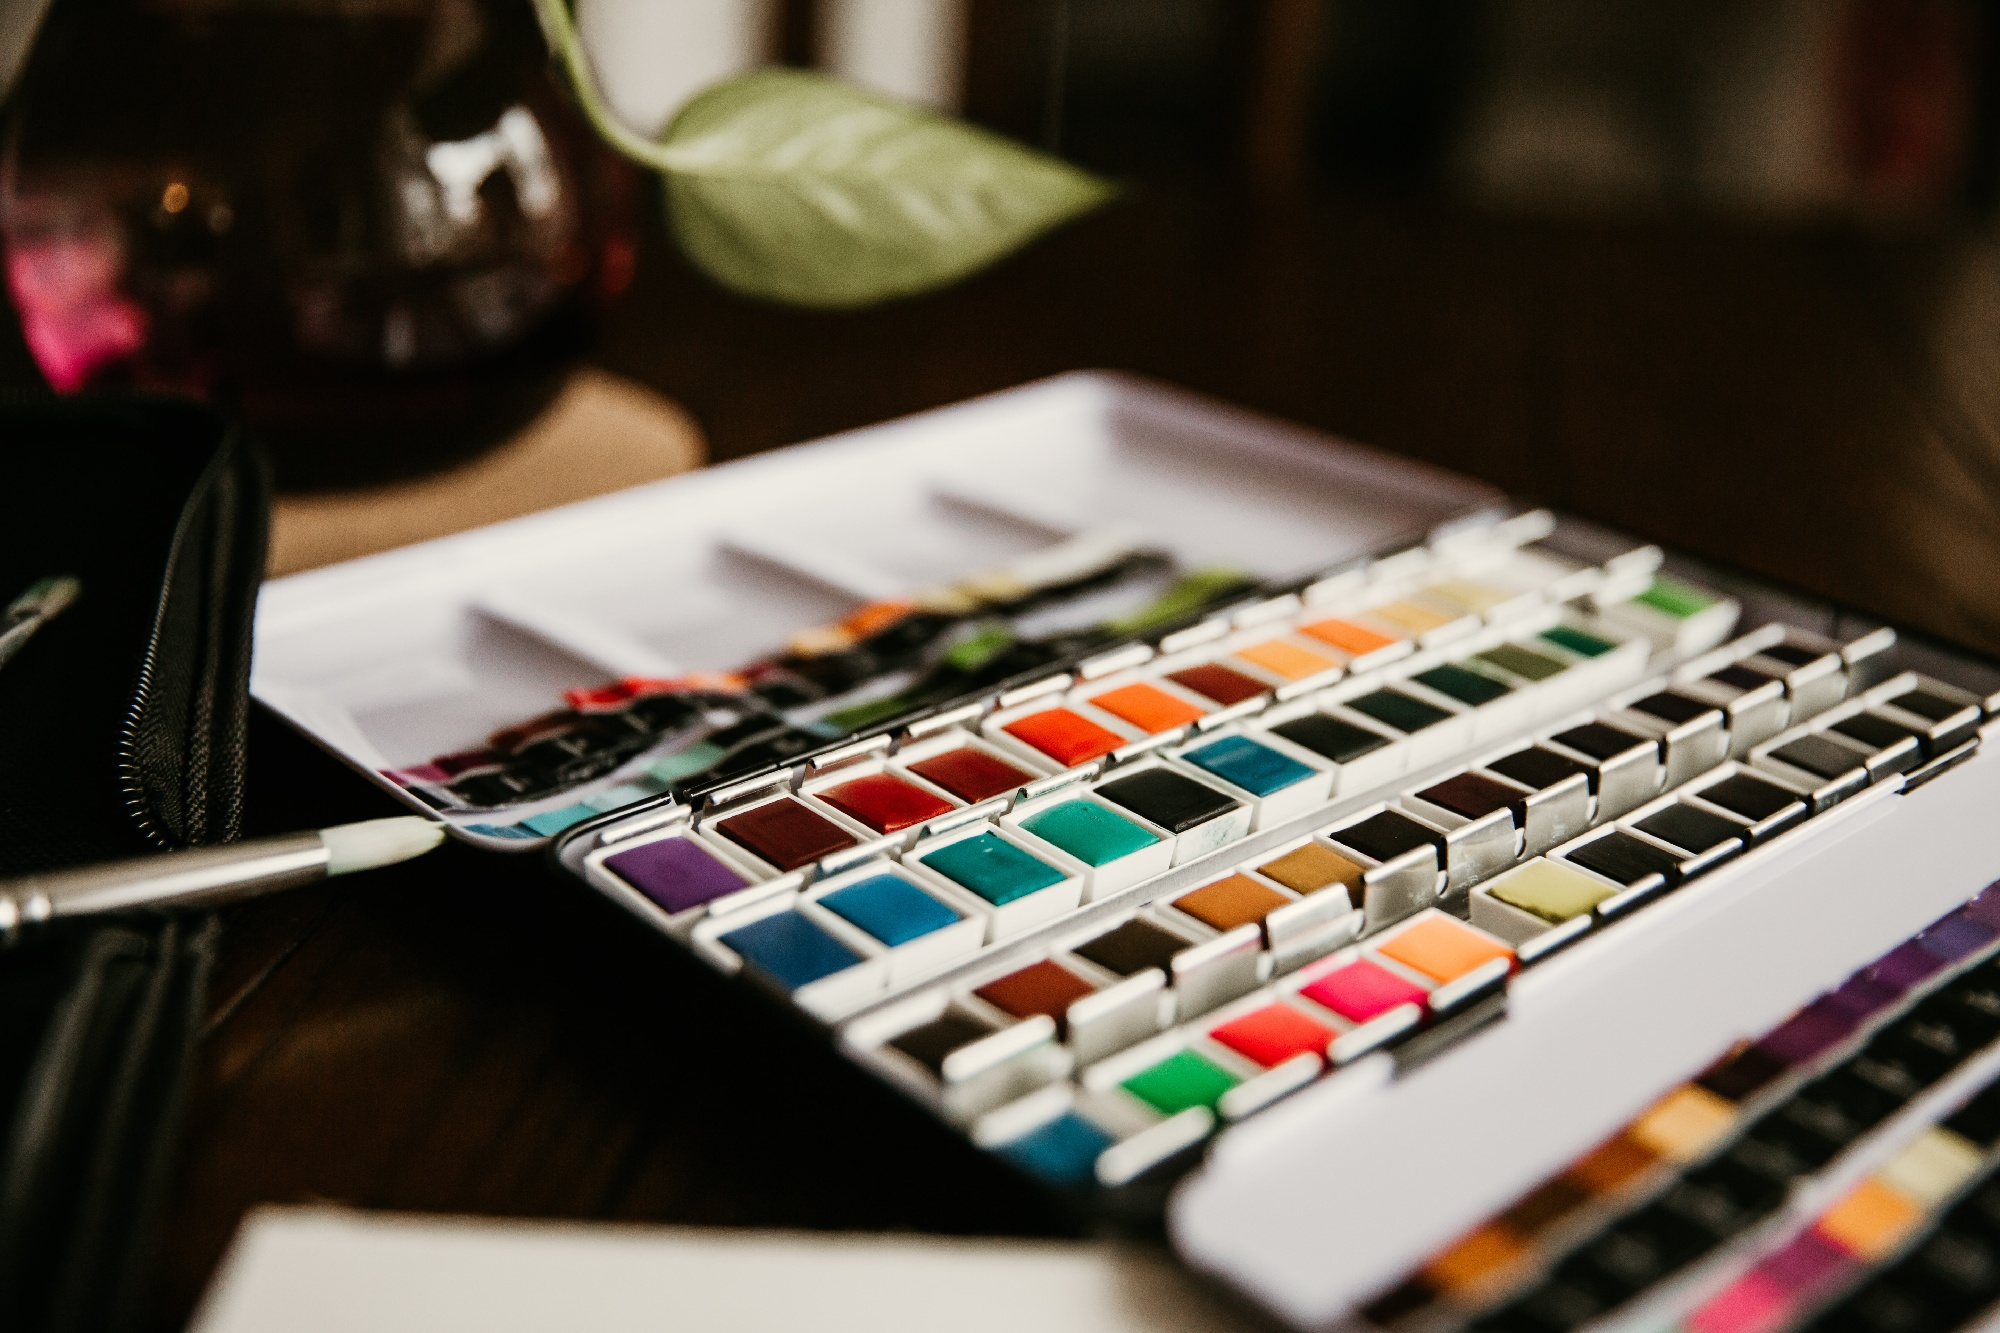 MakersValley Blog | Adding Aesthetics to Fashion Designs: Deciding on a Color Palette